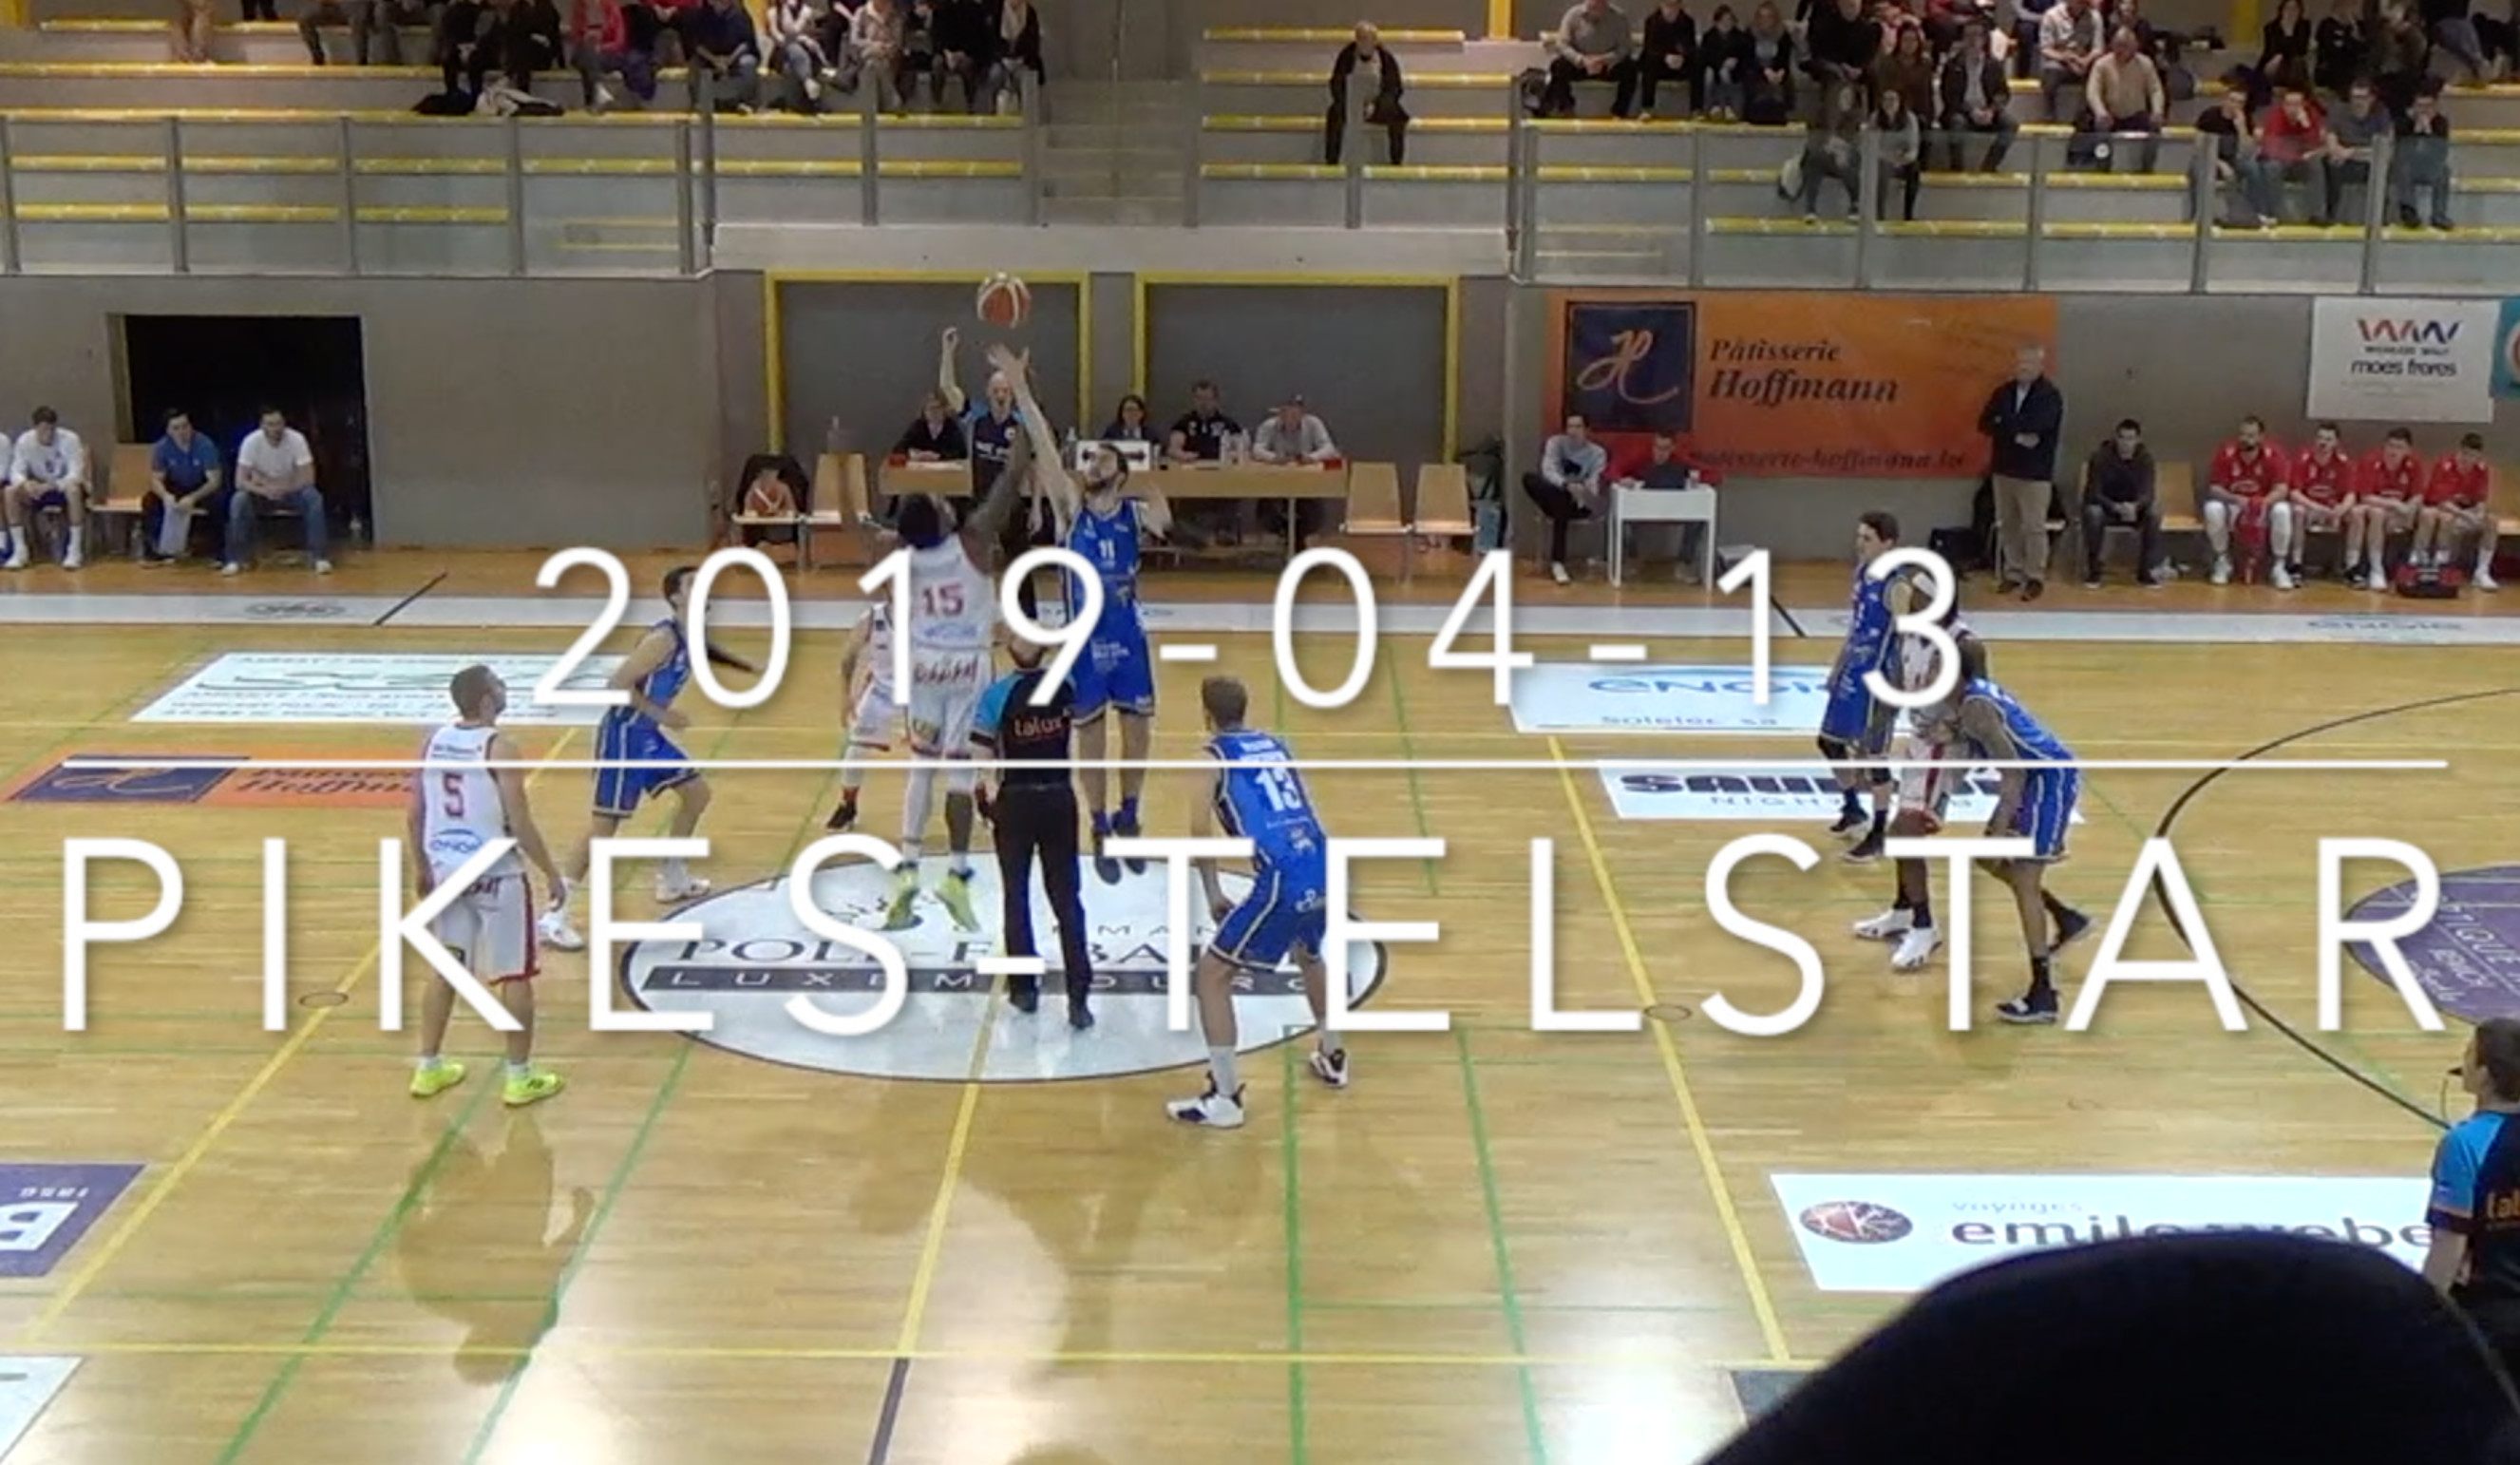 2019-04-13 Pikes-Telstar (Pikes highlights)